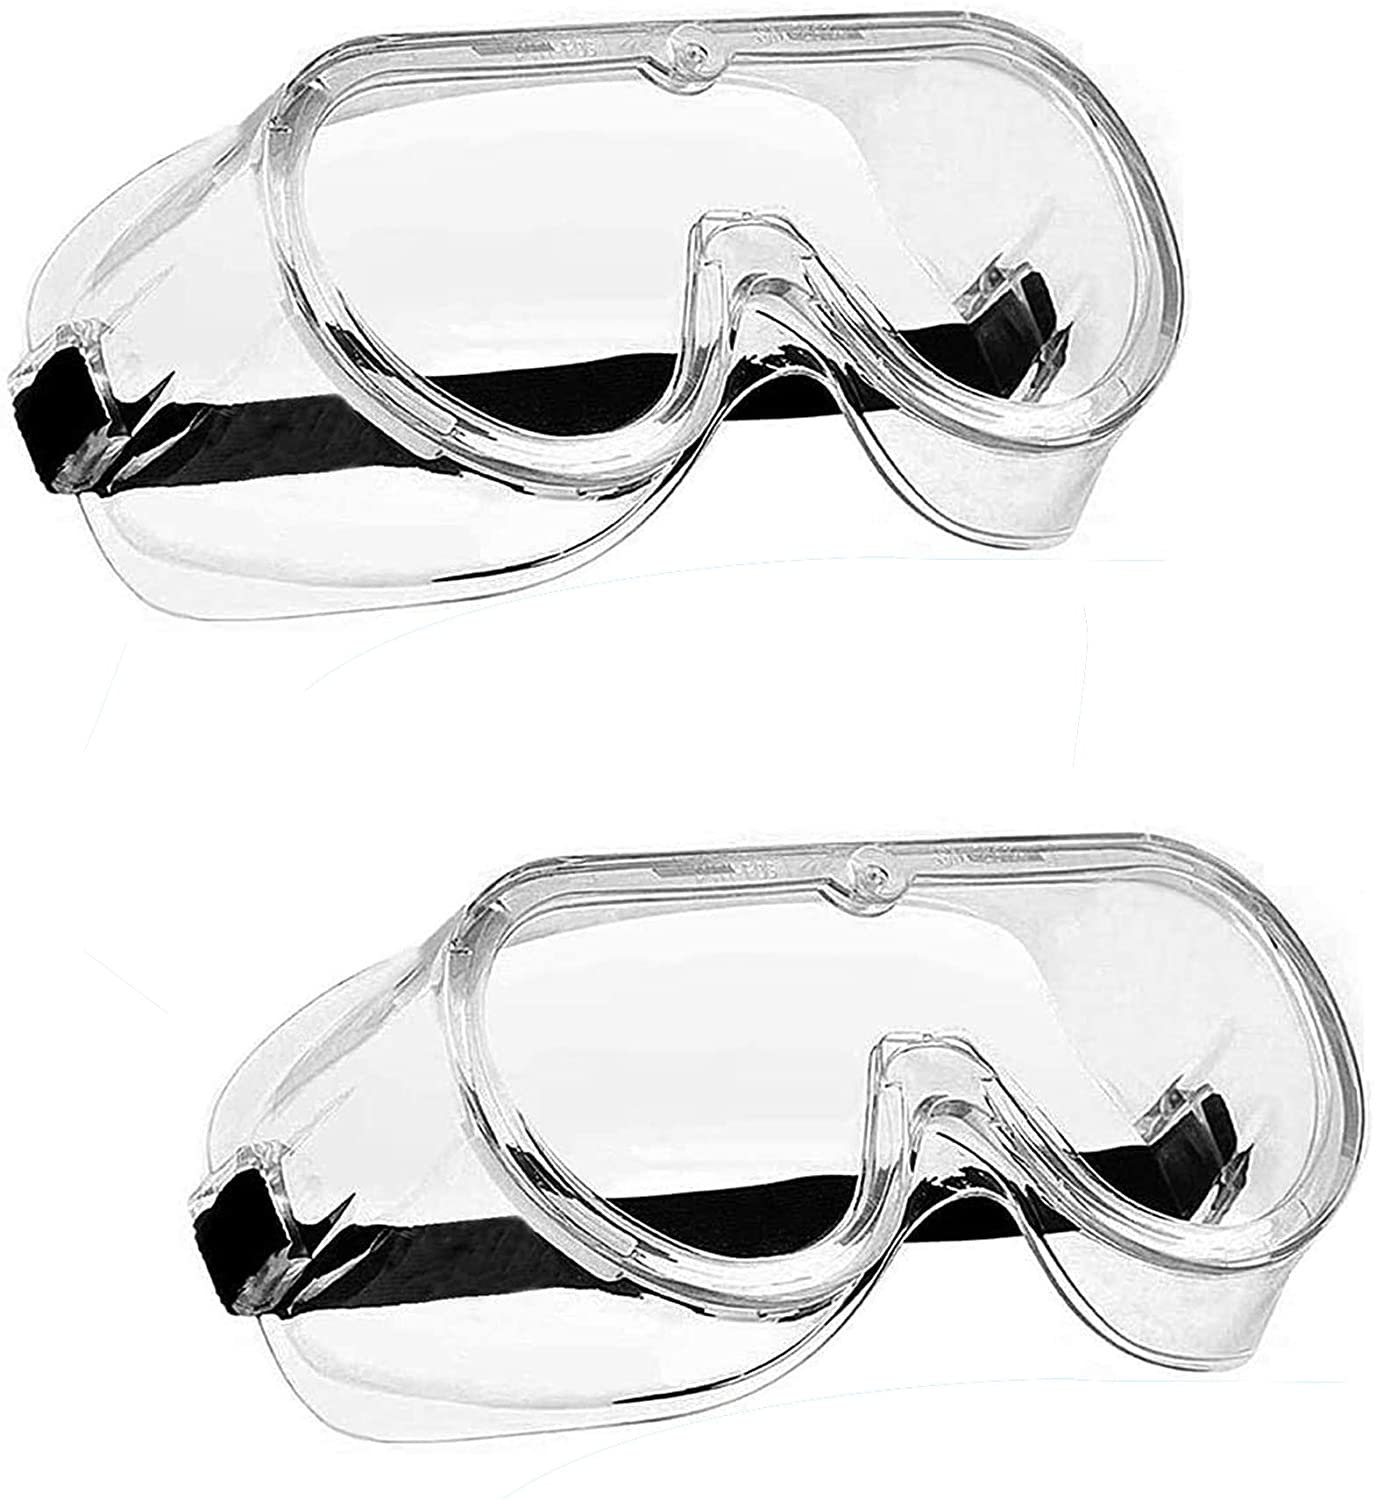 Safety Goggles, Chemistry Goggles, Lab Safety Goggles Over Glasses, Protective Goggles, Protective Eyewear, Soft Crystal Clear Eye Protection - Perfect For Construction, Shooting, Lab Work, And More